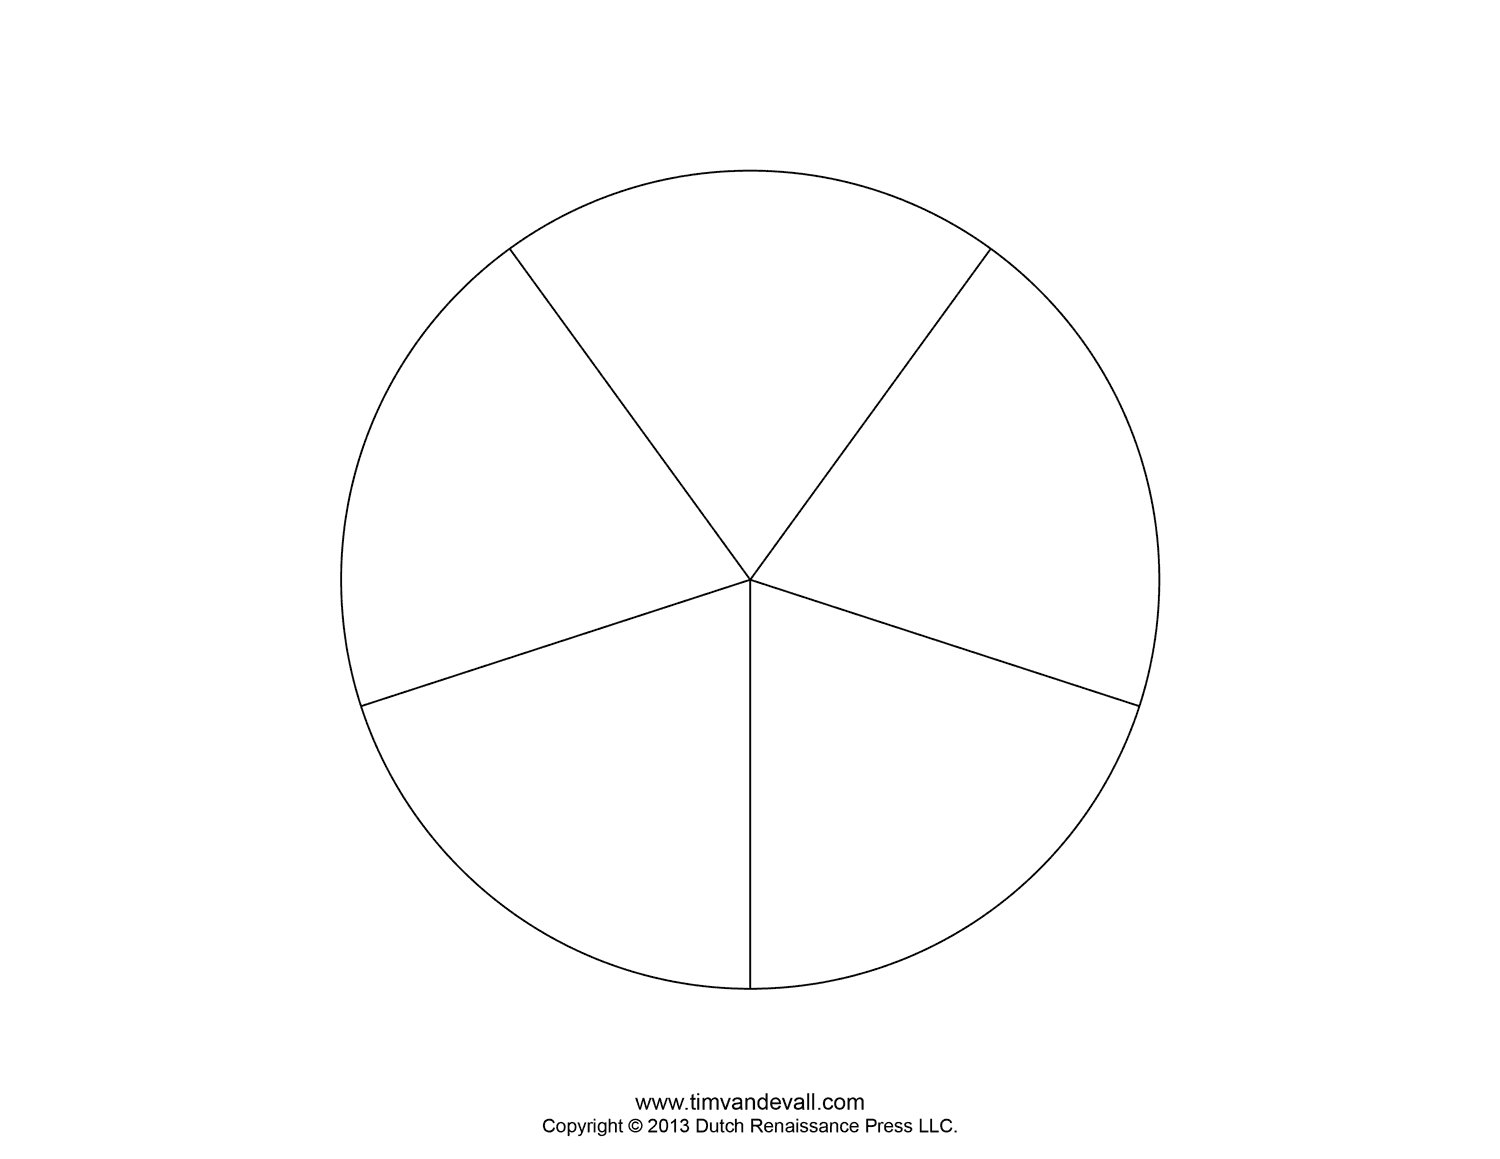 Blank Pie Chart Templates | Make A Pie Chart - Free Printable Pie Chart